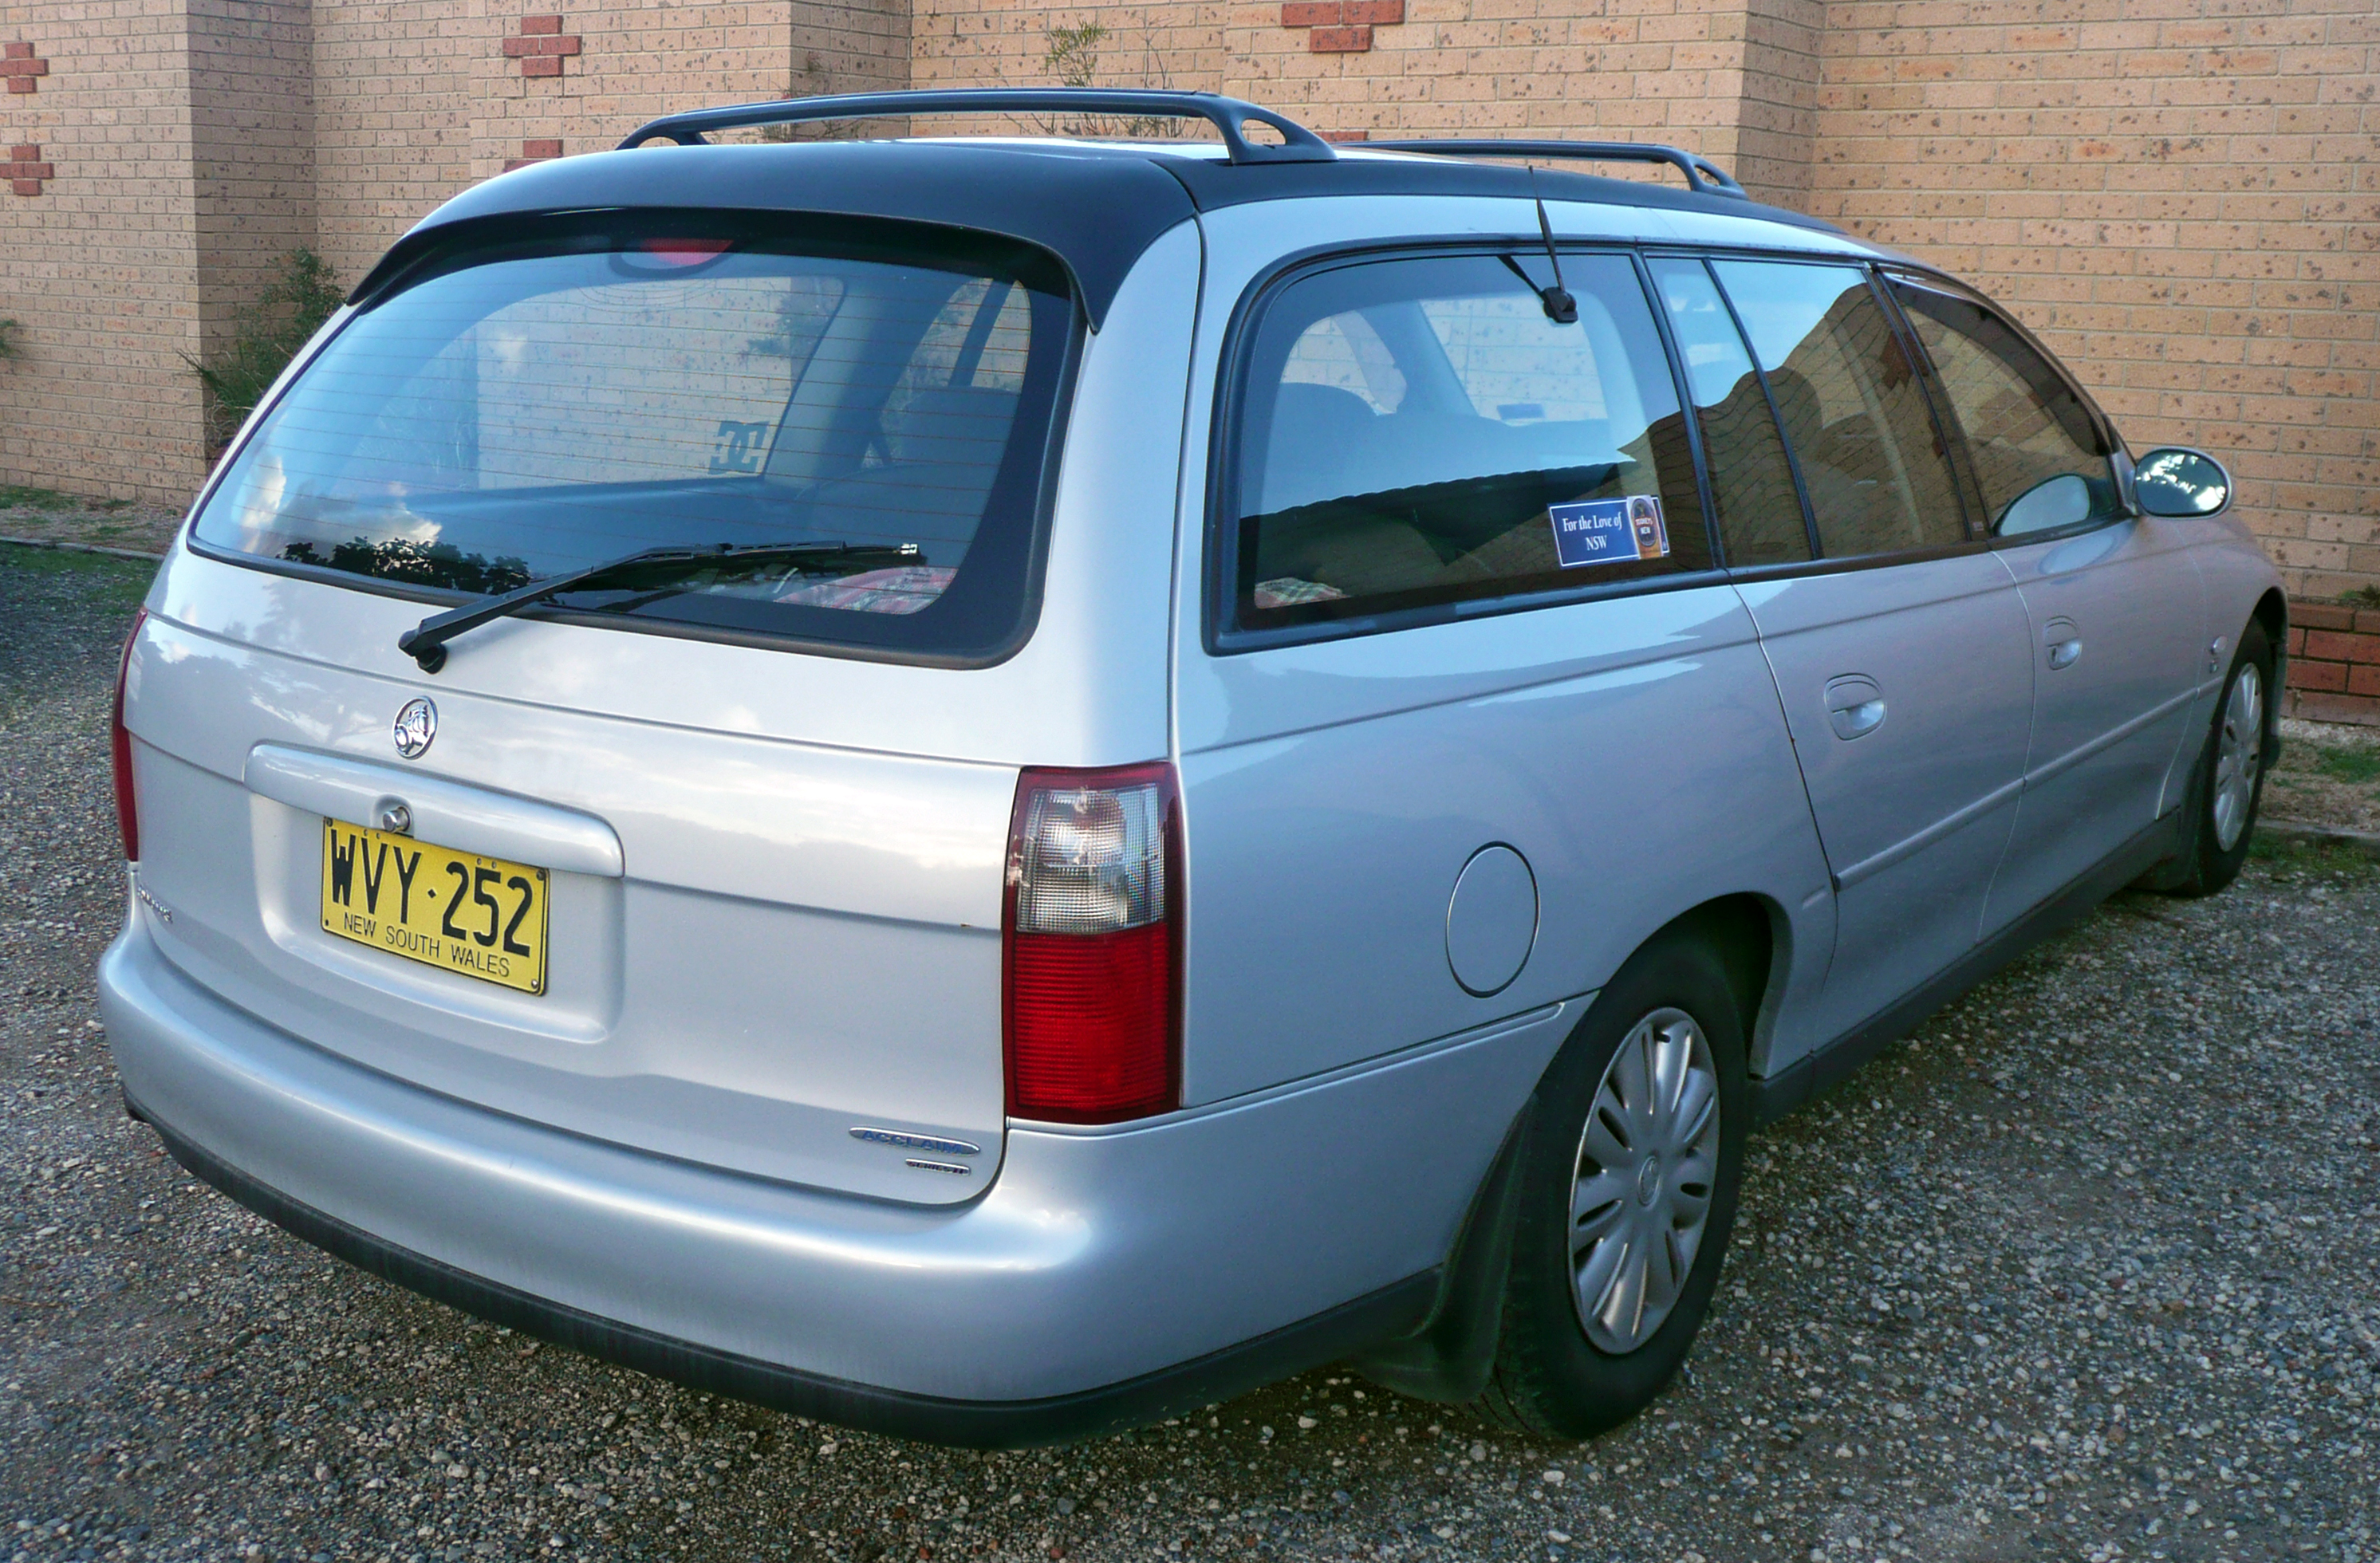 holden commodore wagon (vt) 1999 #1